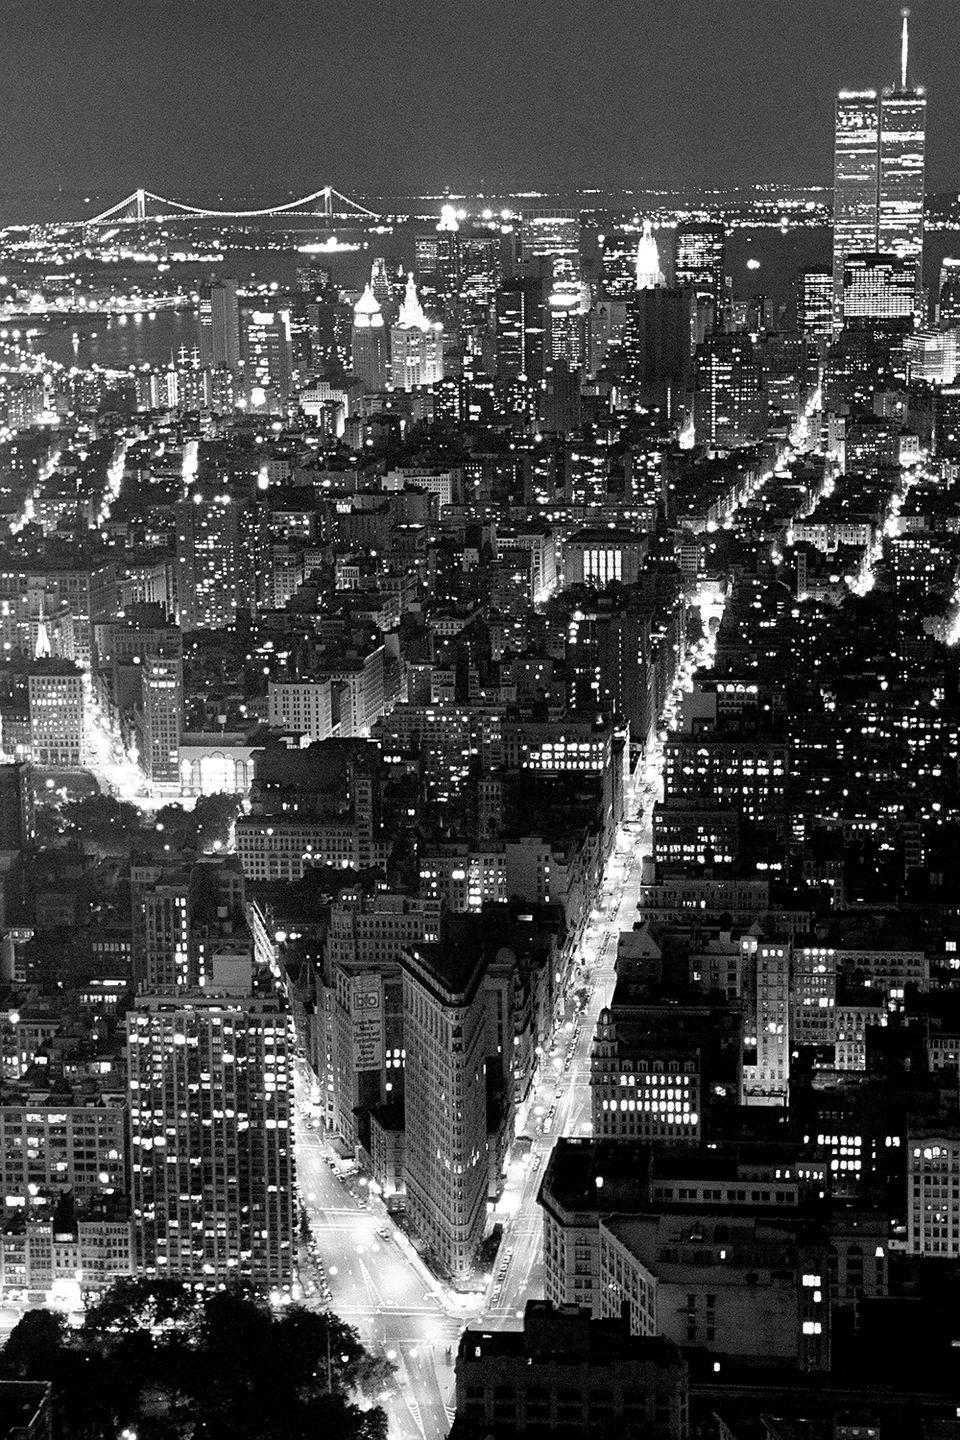 <p>Views of the New York skyline at night from atop the Empire State Building.</p>